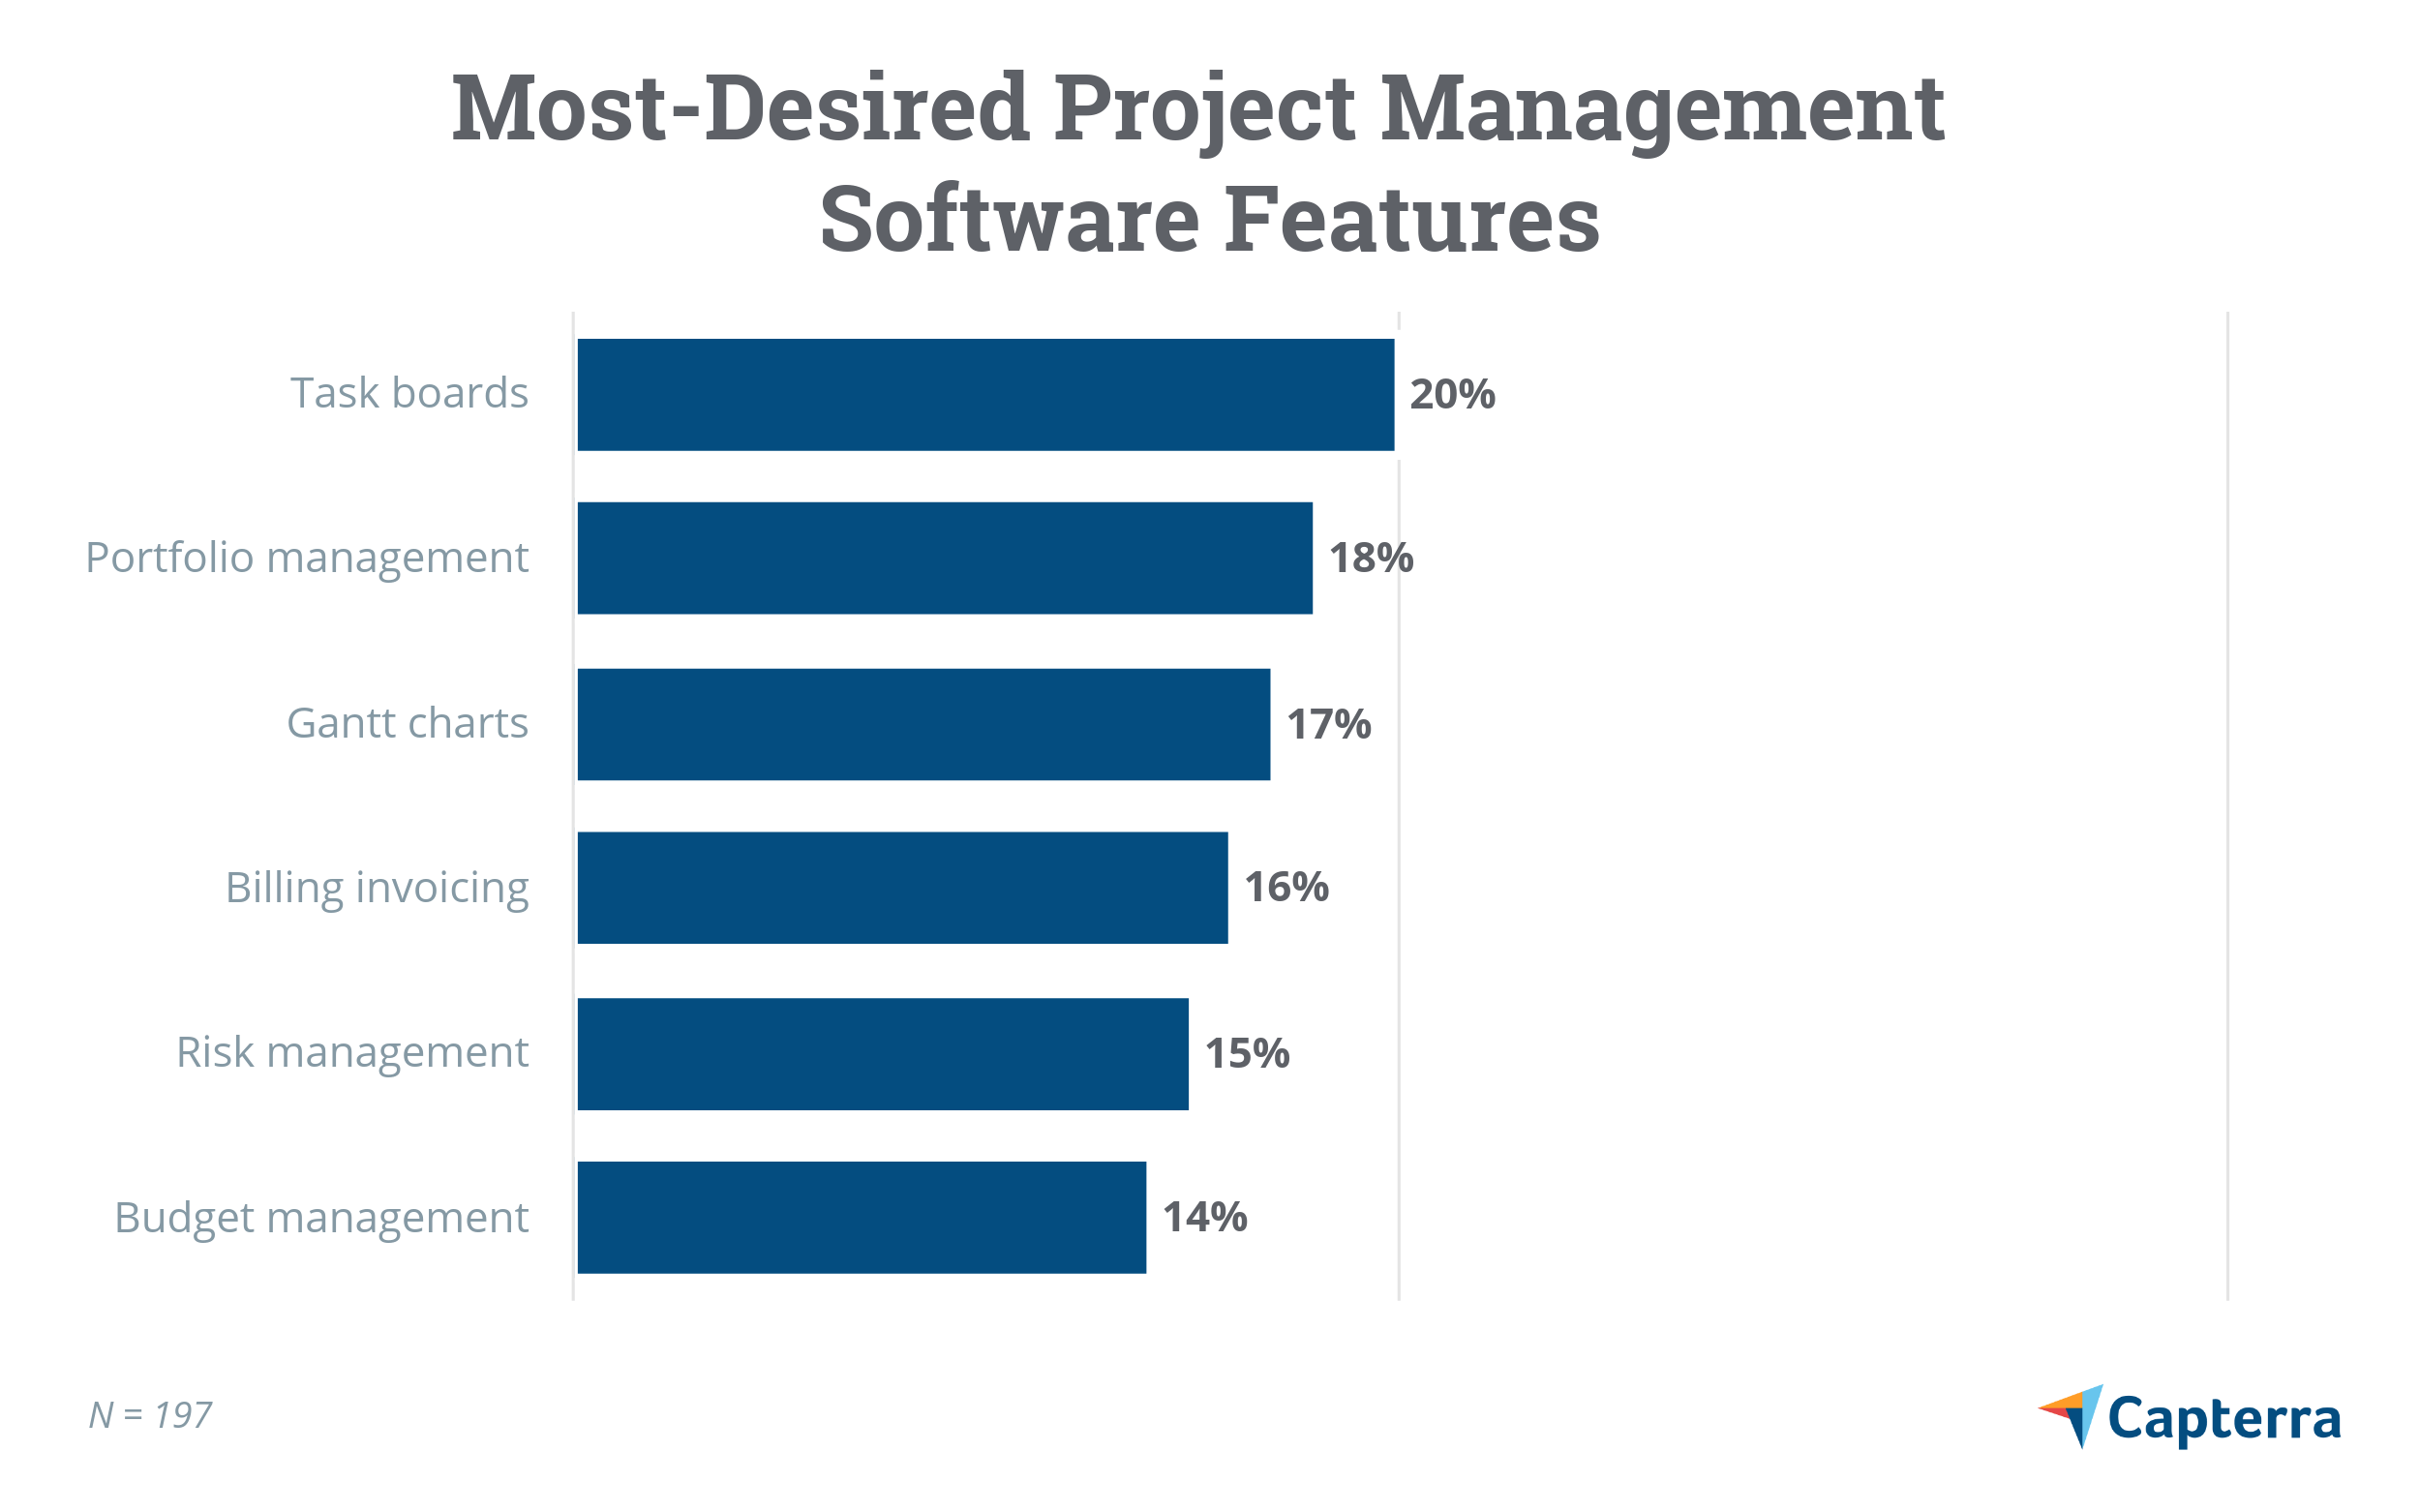 Most desired project management software features